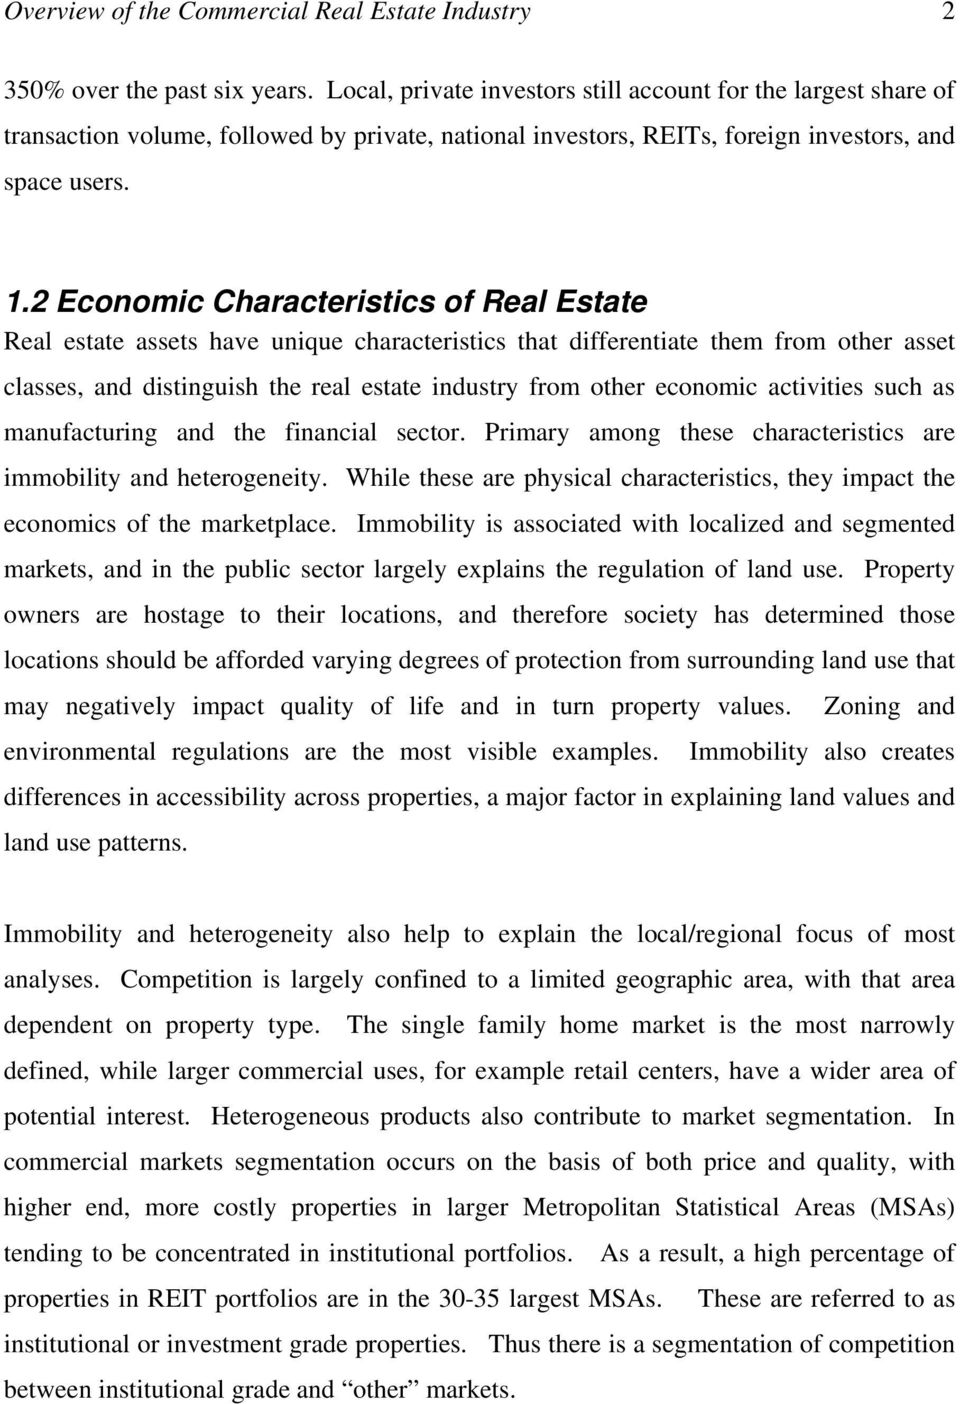 2 Economic Characteristics of Real Estate Real estate assets have unique characteristics that differentiate them from other asset classes, and distinguish the real estate industry from other economic